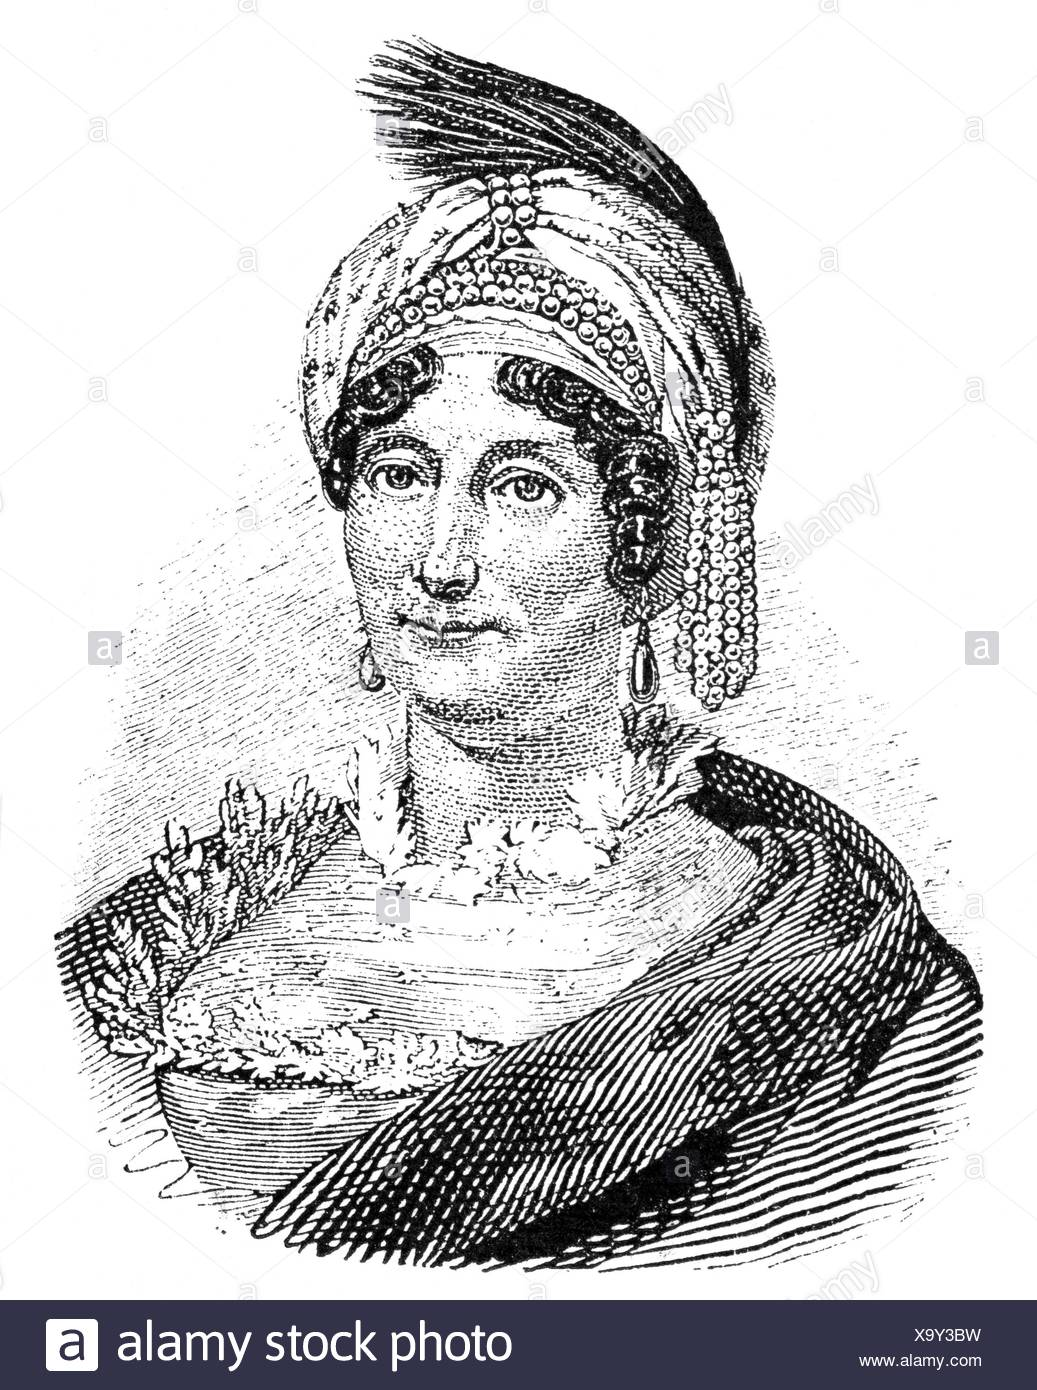 Buonaparte, Laetizia, 24.8.1750 - 2.5.1836, Corsican noblewoman, portrait, wood engraving, 19th century, , Stock Photo